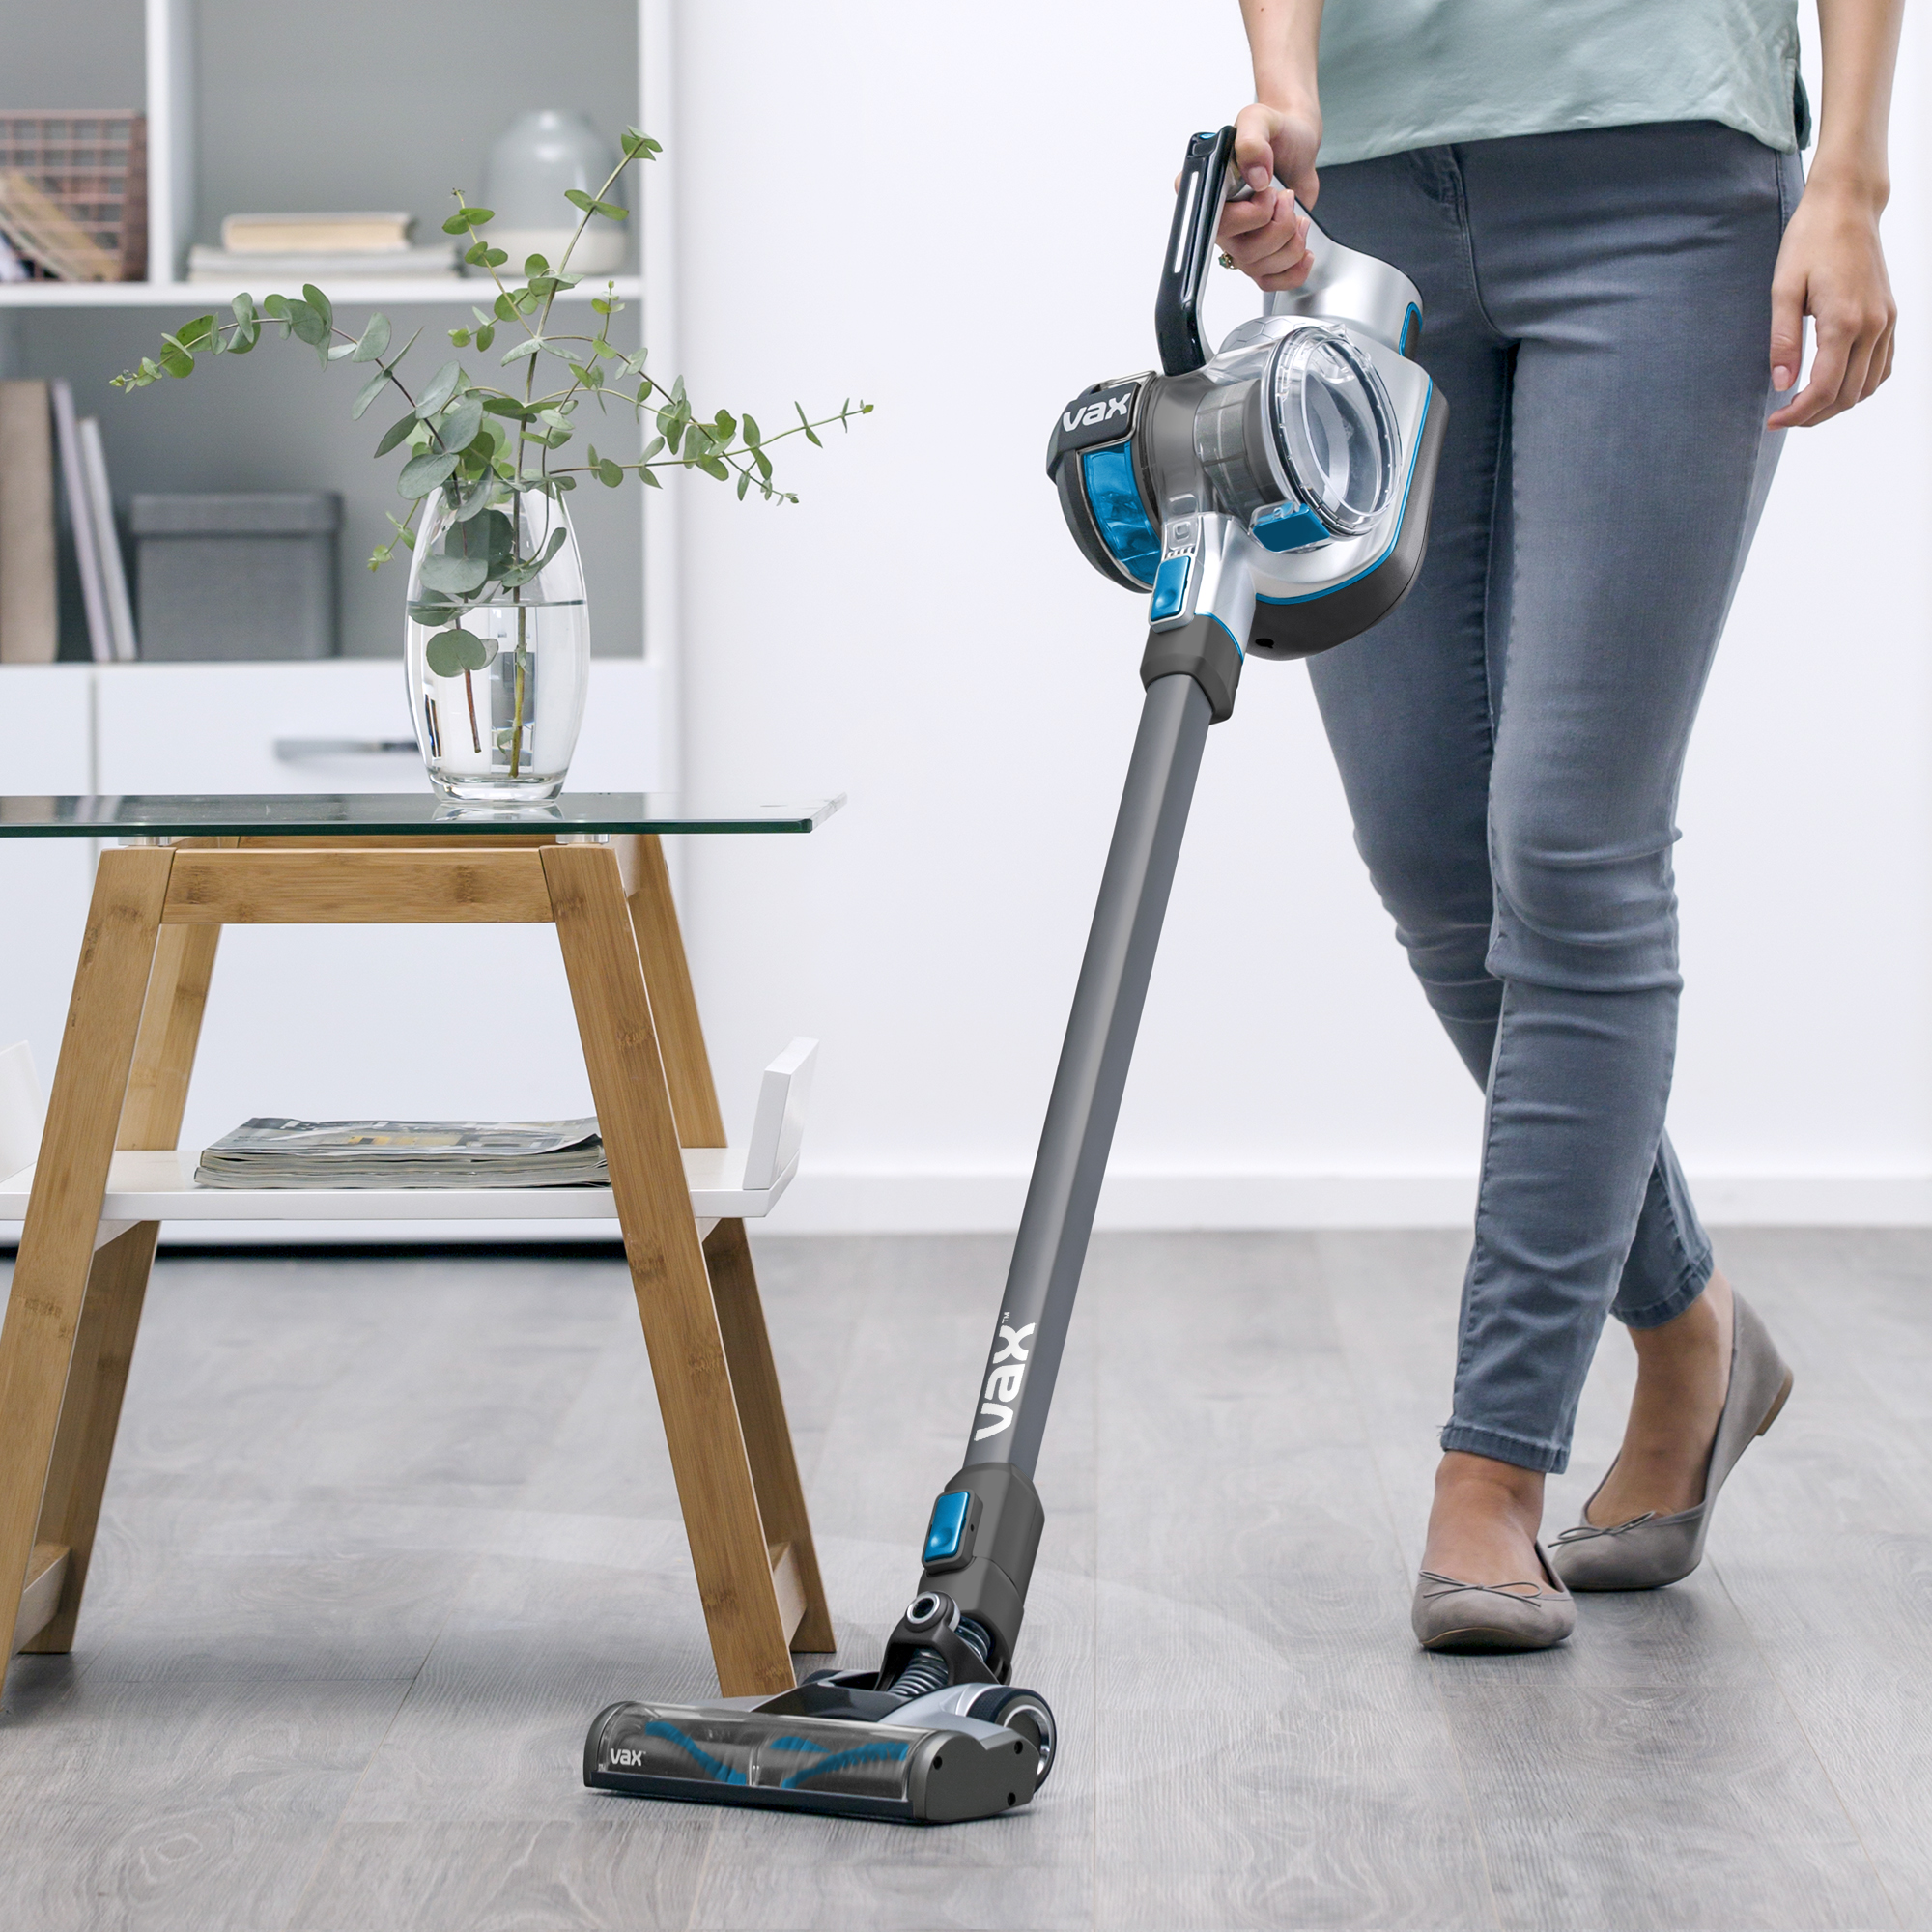 My Vacuum's Brushes Have Stopped Spinning - Vax Blog